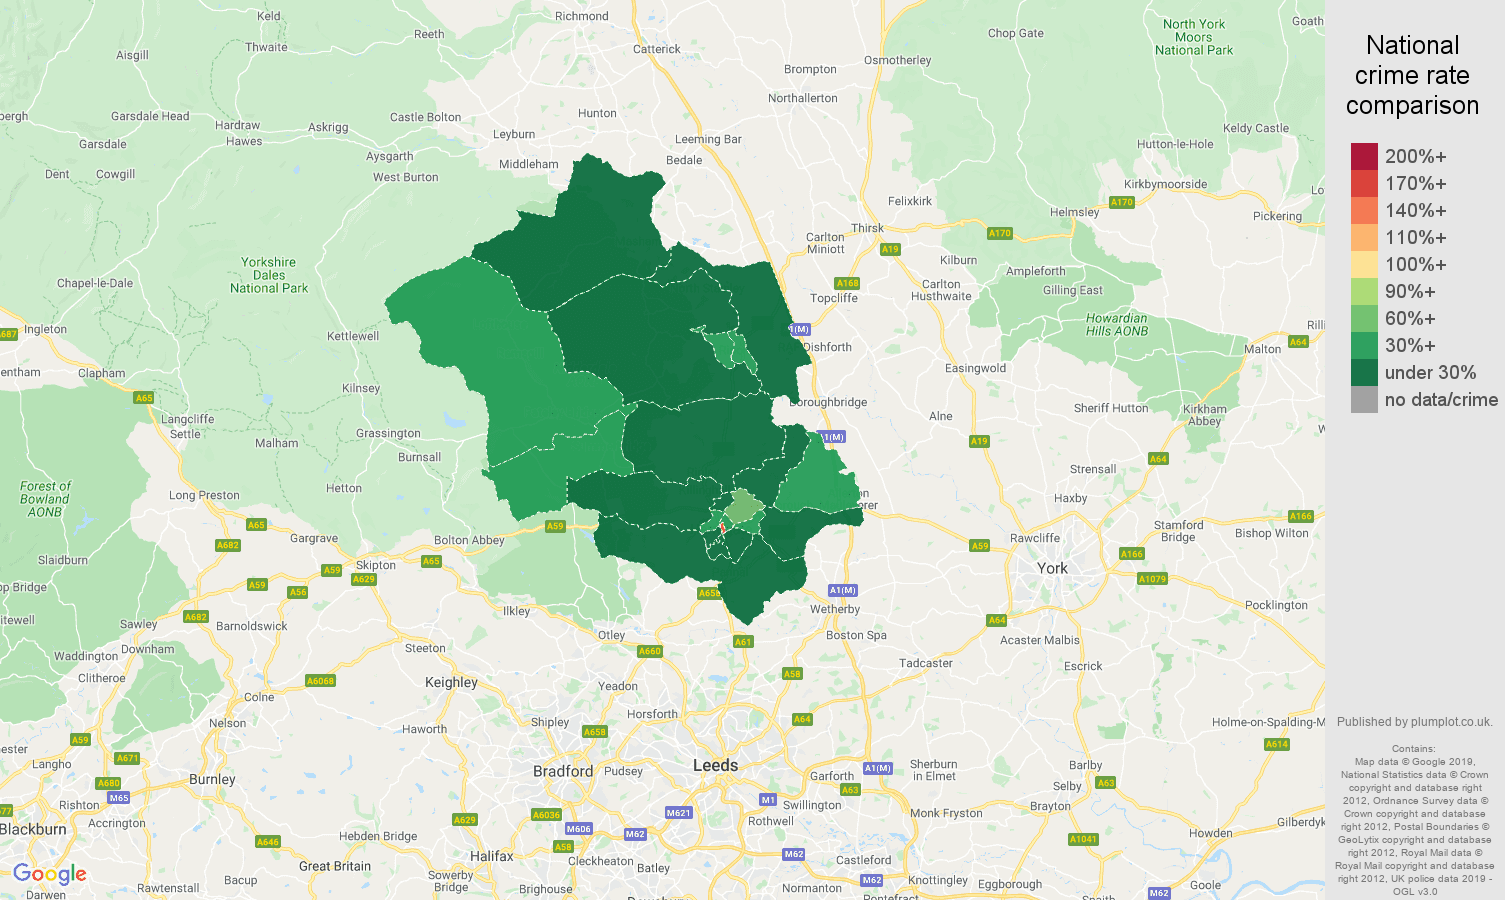 Harrogate public order crime rate comparison map